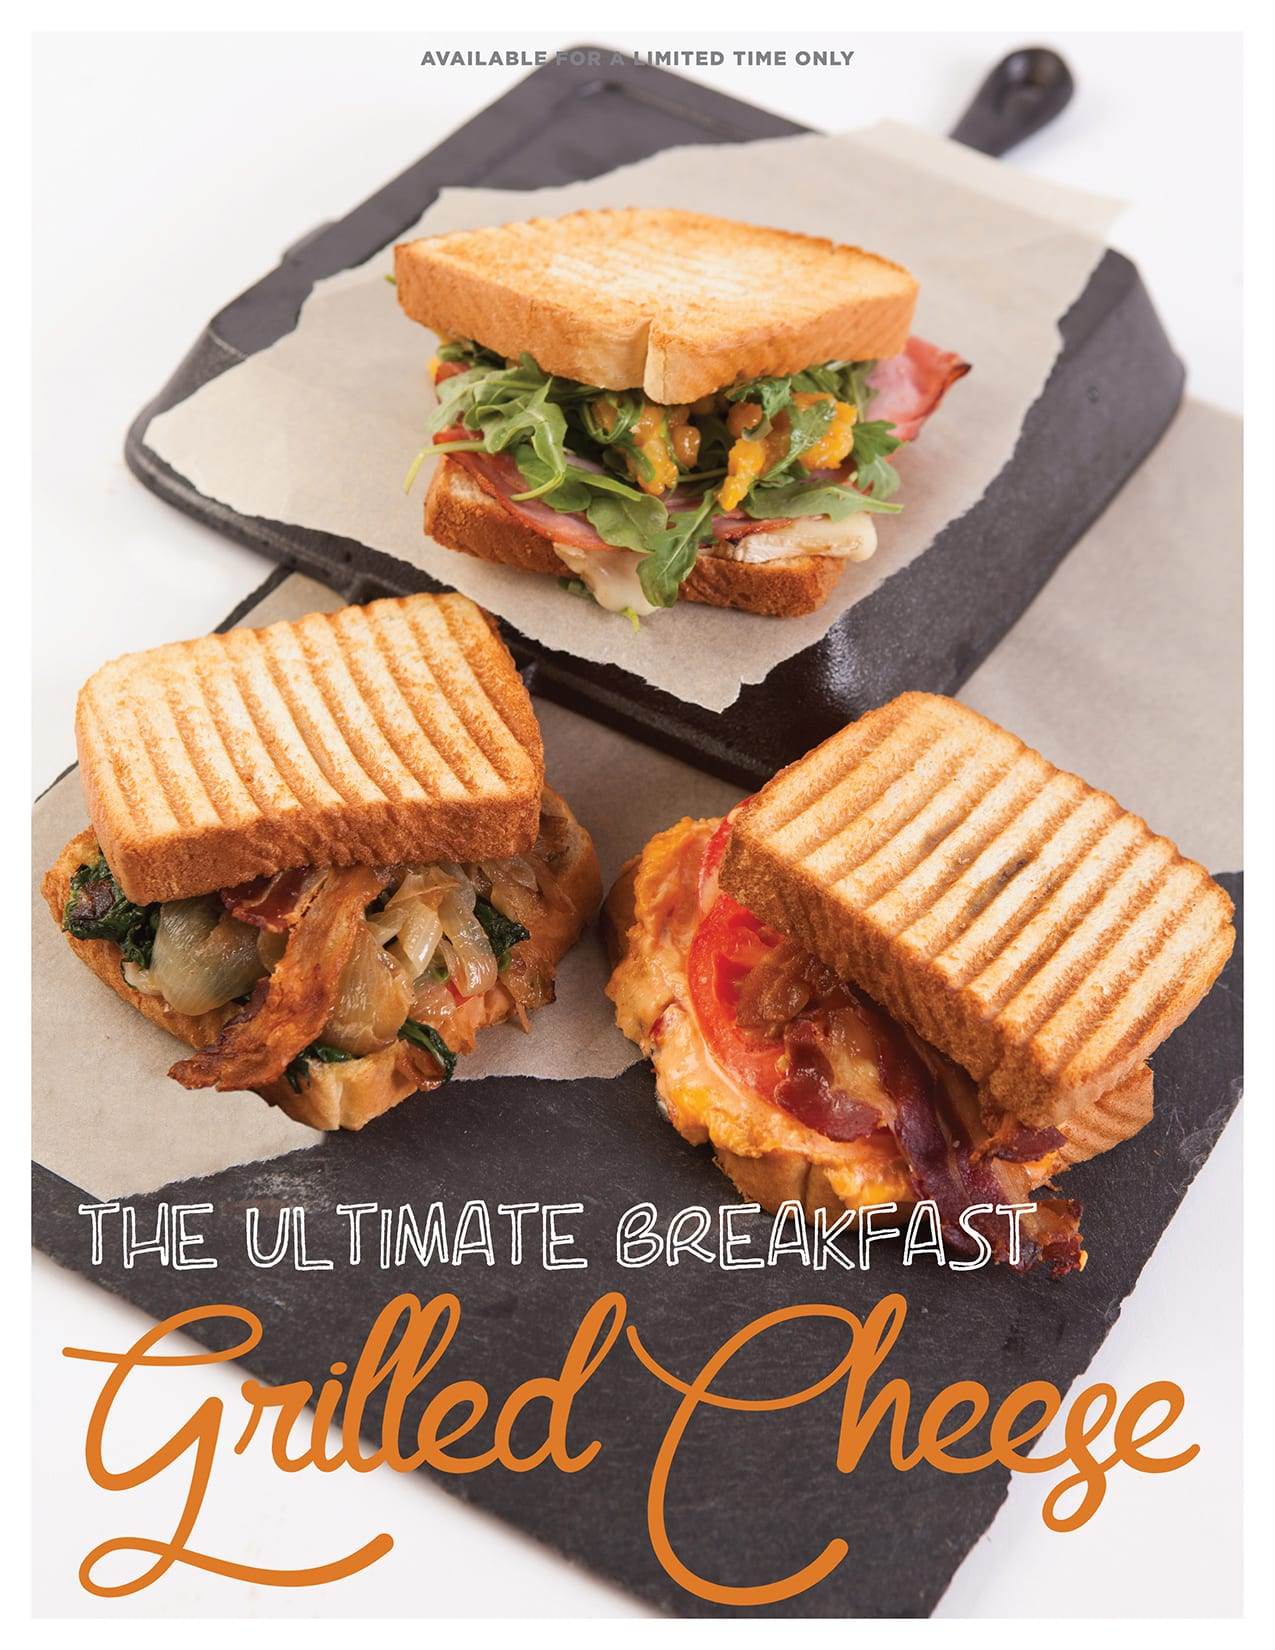 1602_february-LTOs_ultimate-breakfast-grilled-cheese_8.5x11_static